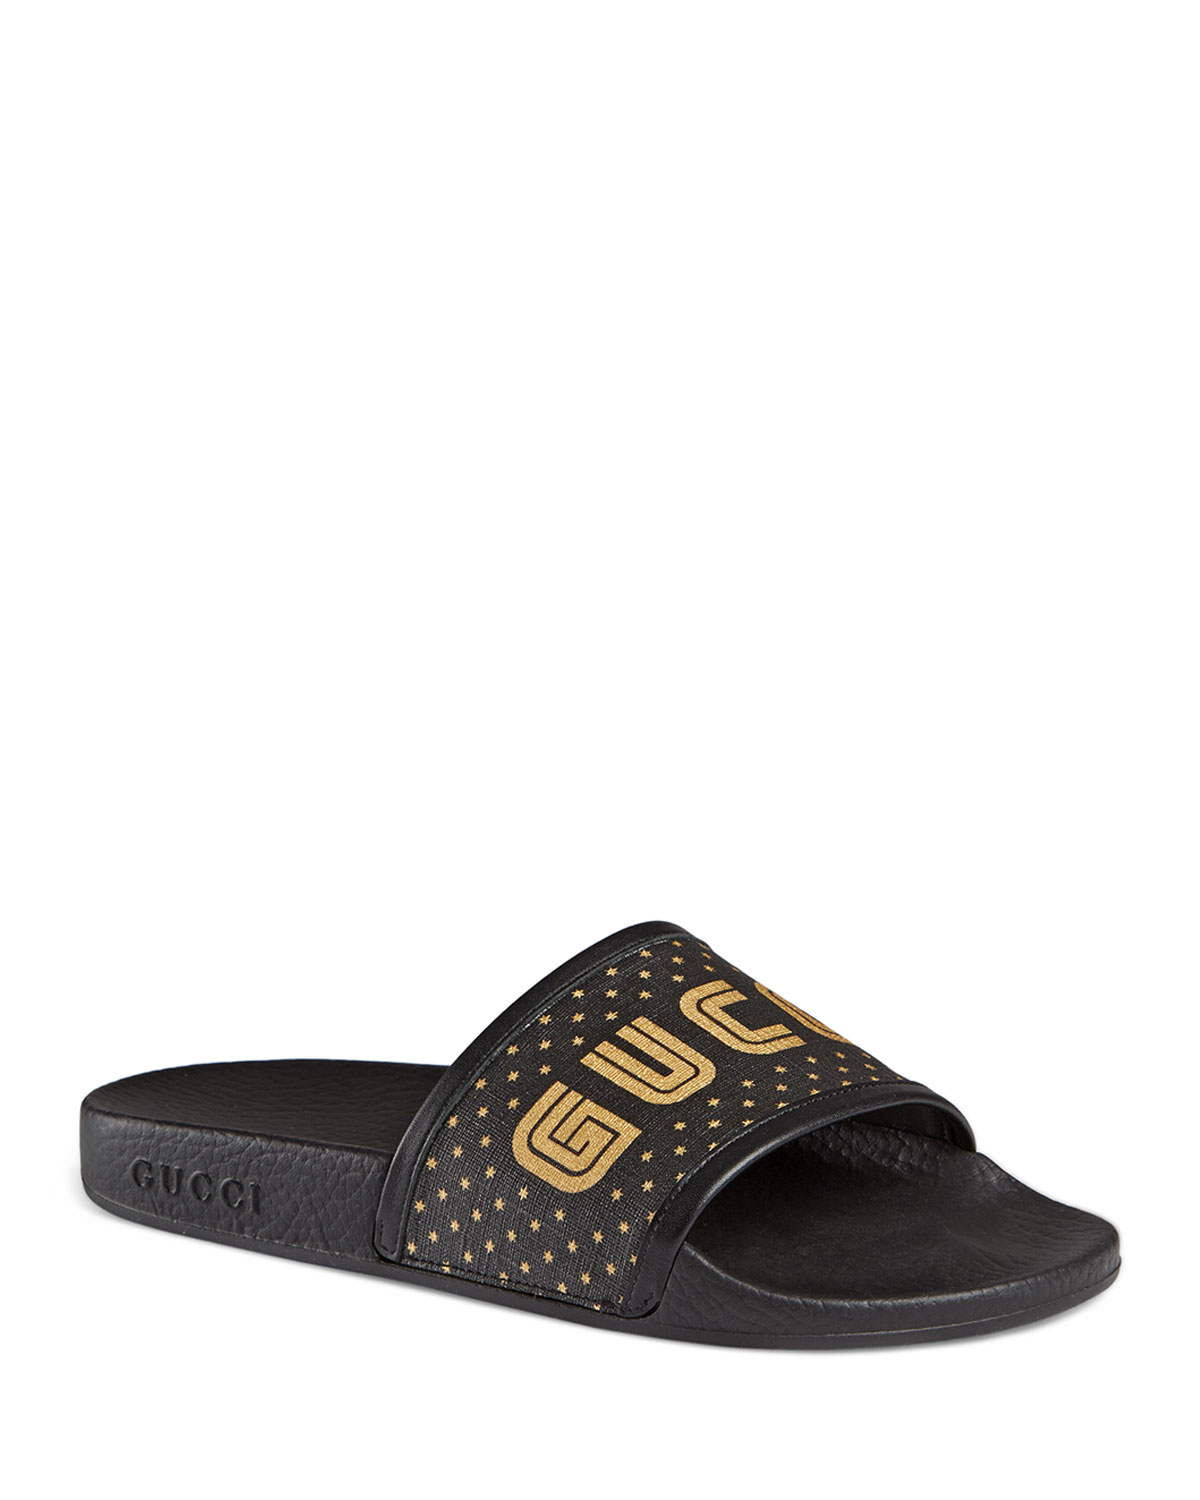 eaf3341efbd Gucci Pursuit Guccy Slide